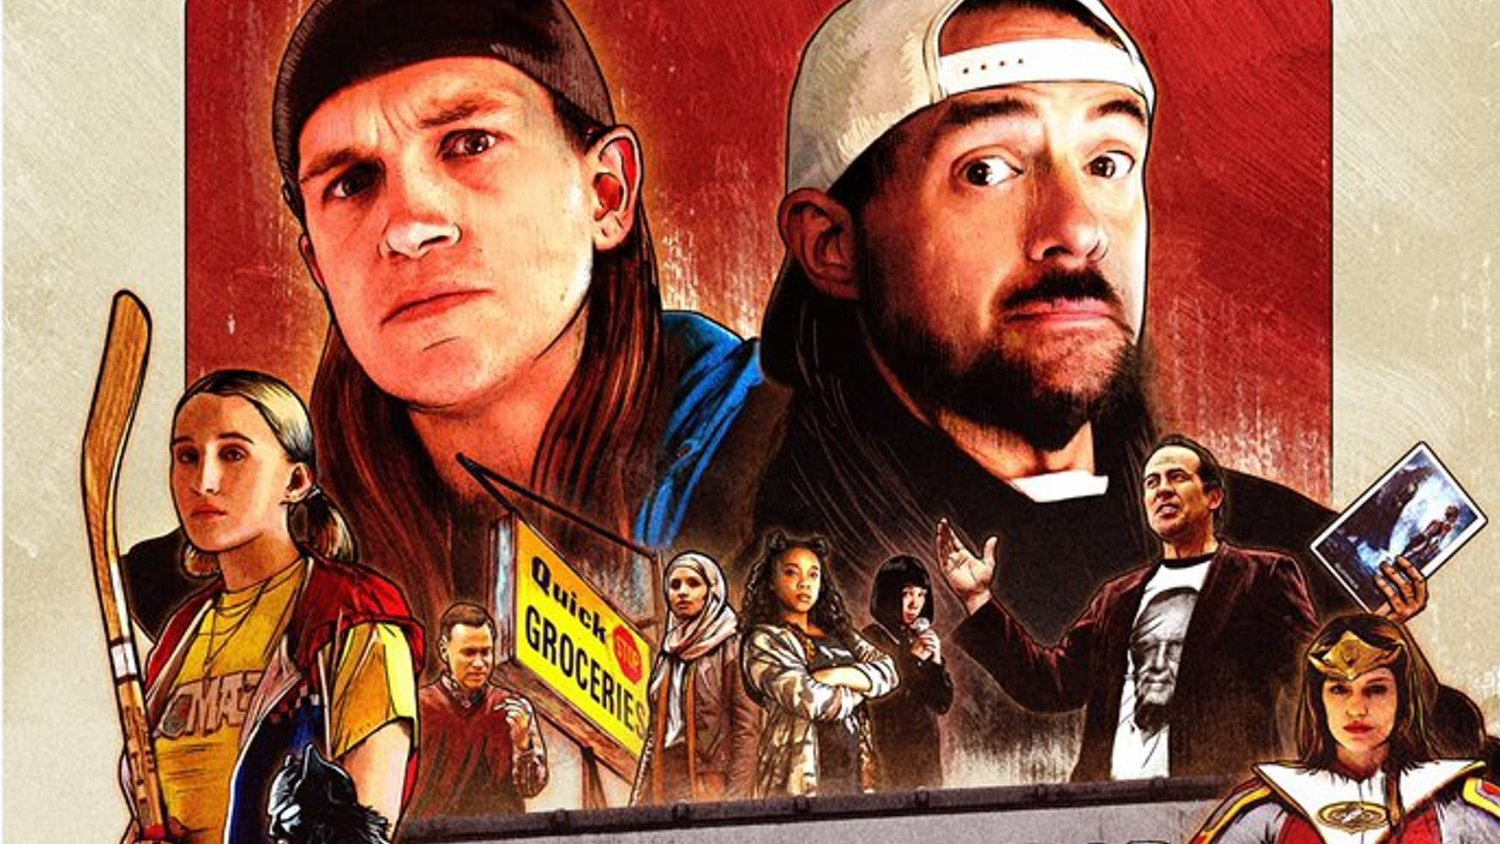 Kevin Smith Shares First Poster for JAY & SILENT BOB REBOOT